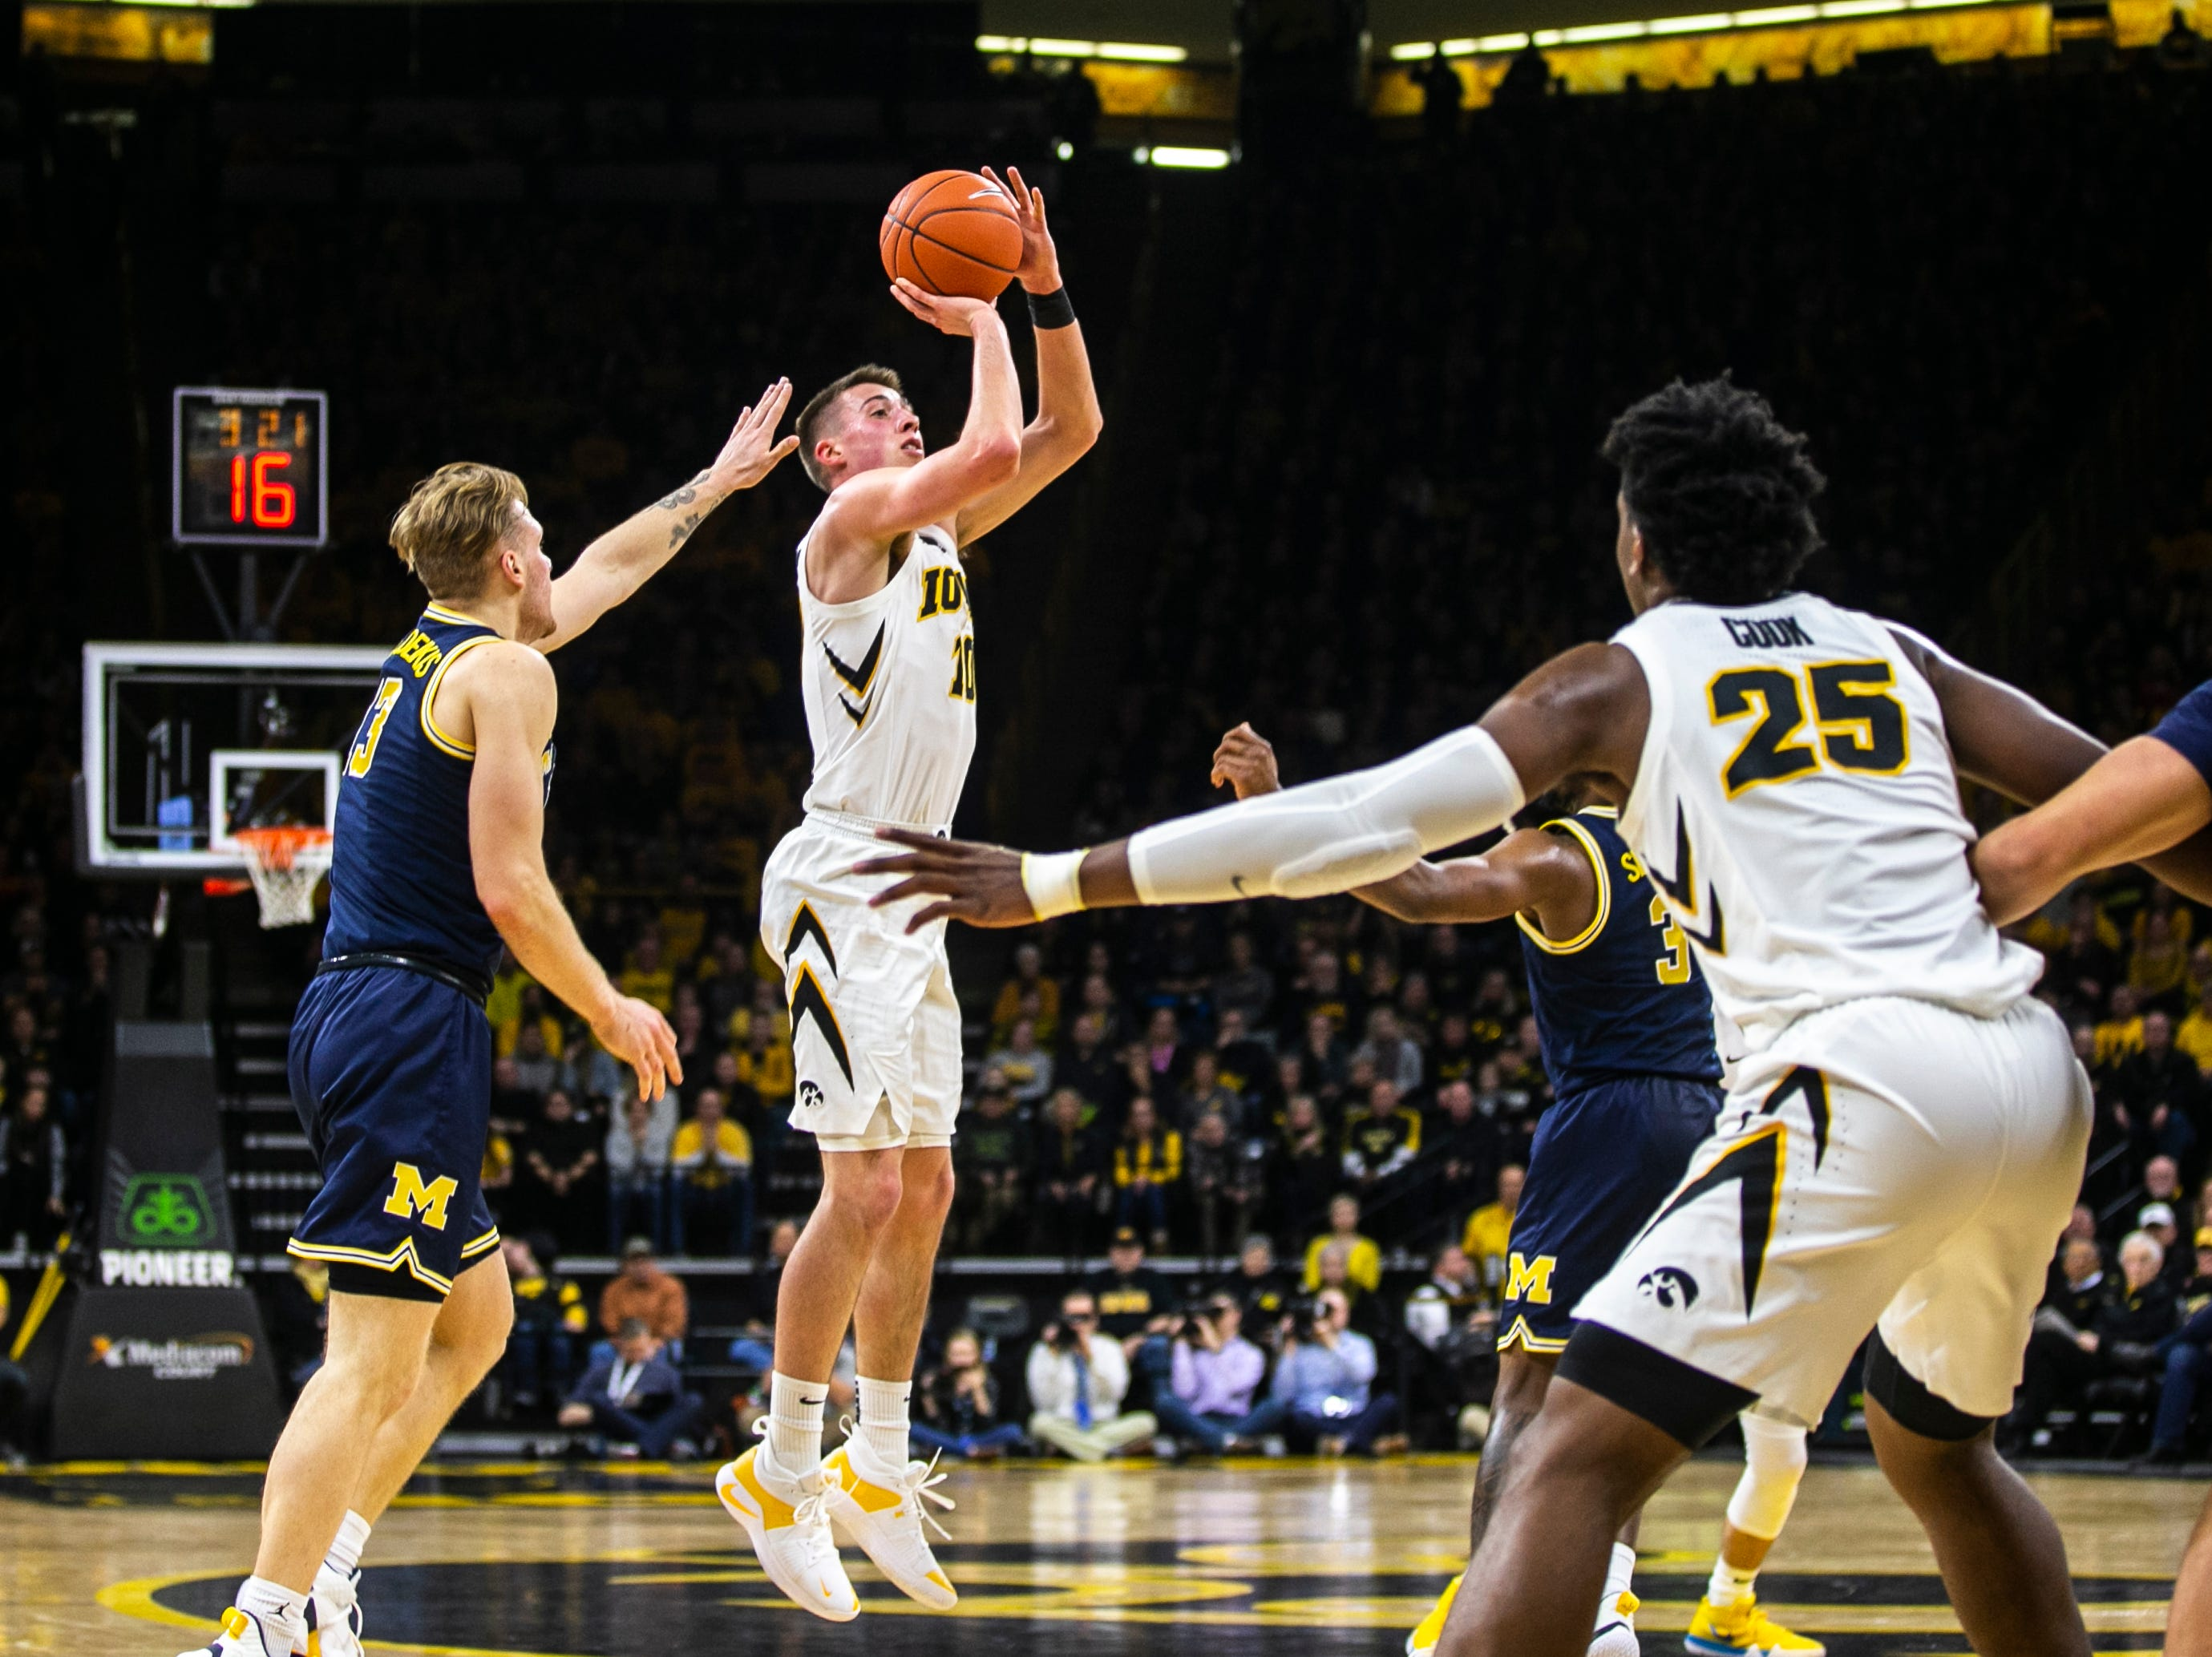 Iowa guard Joe Wieskamp (10) shoots a 3-point basket while Michigan forward Ignas Brazdeikis (13) during a NCAA Big Ten Conference men's basketball game on Friday, Feb. 1, 2019, at Carver-Hawkeye Arena in Iowa City, Iowa.